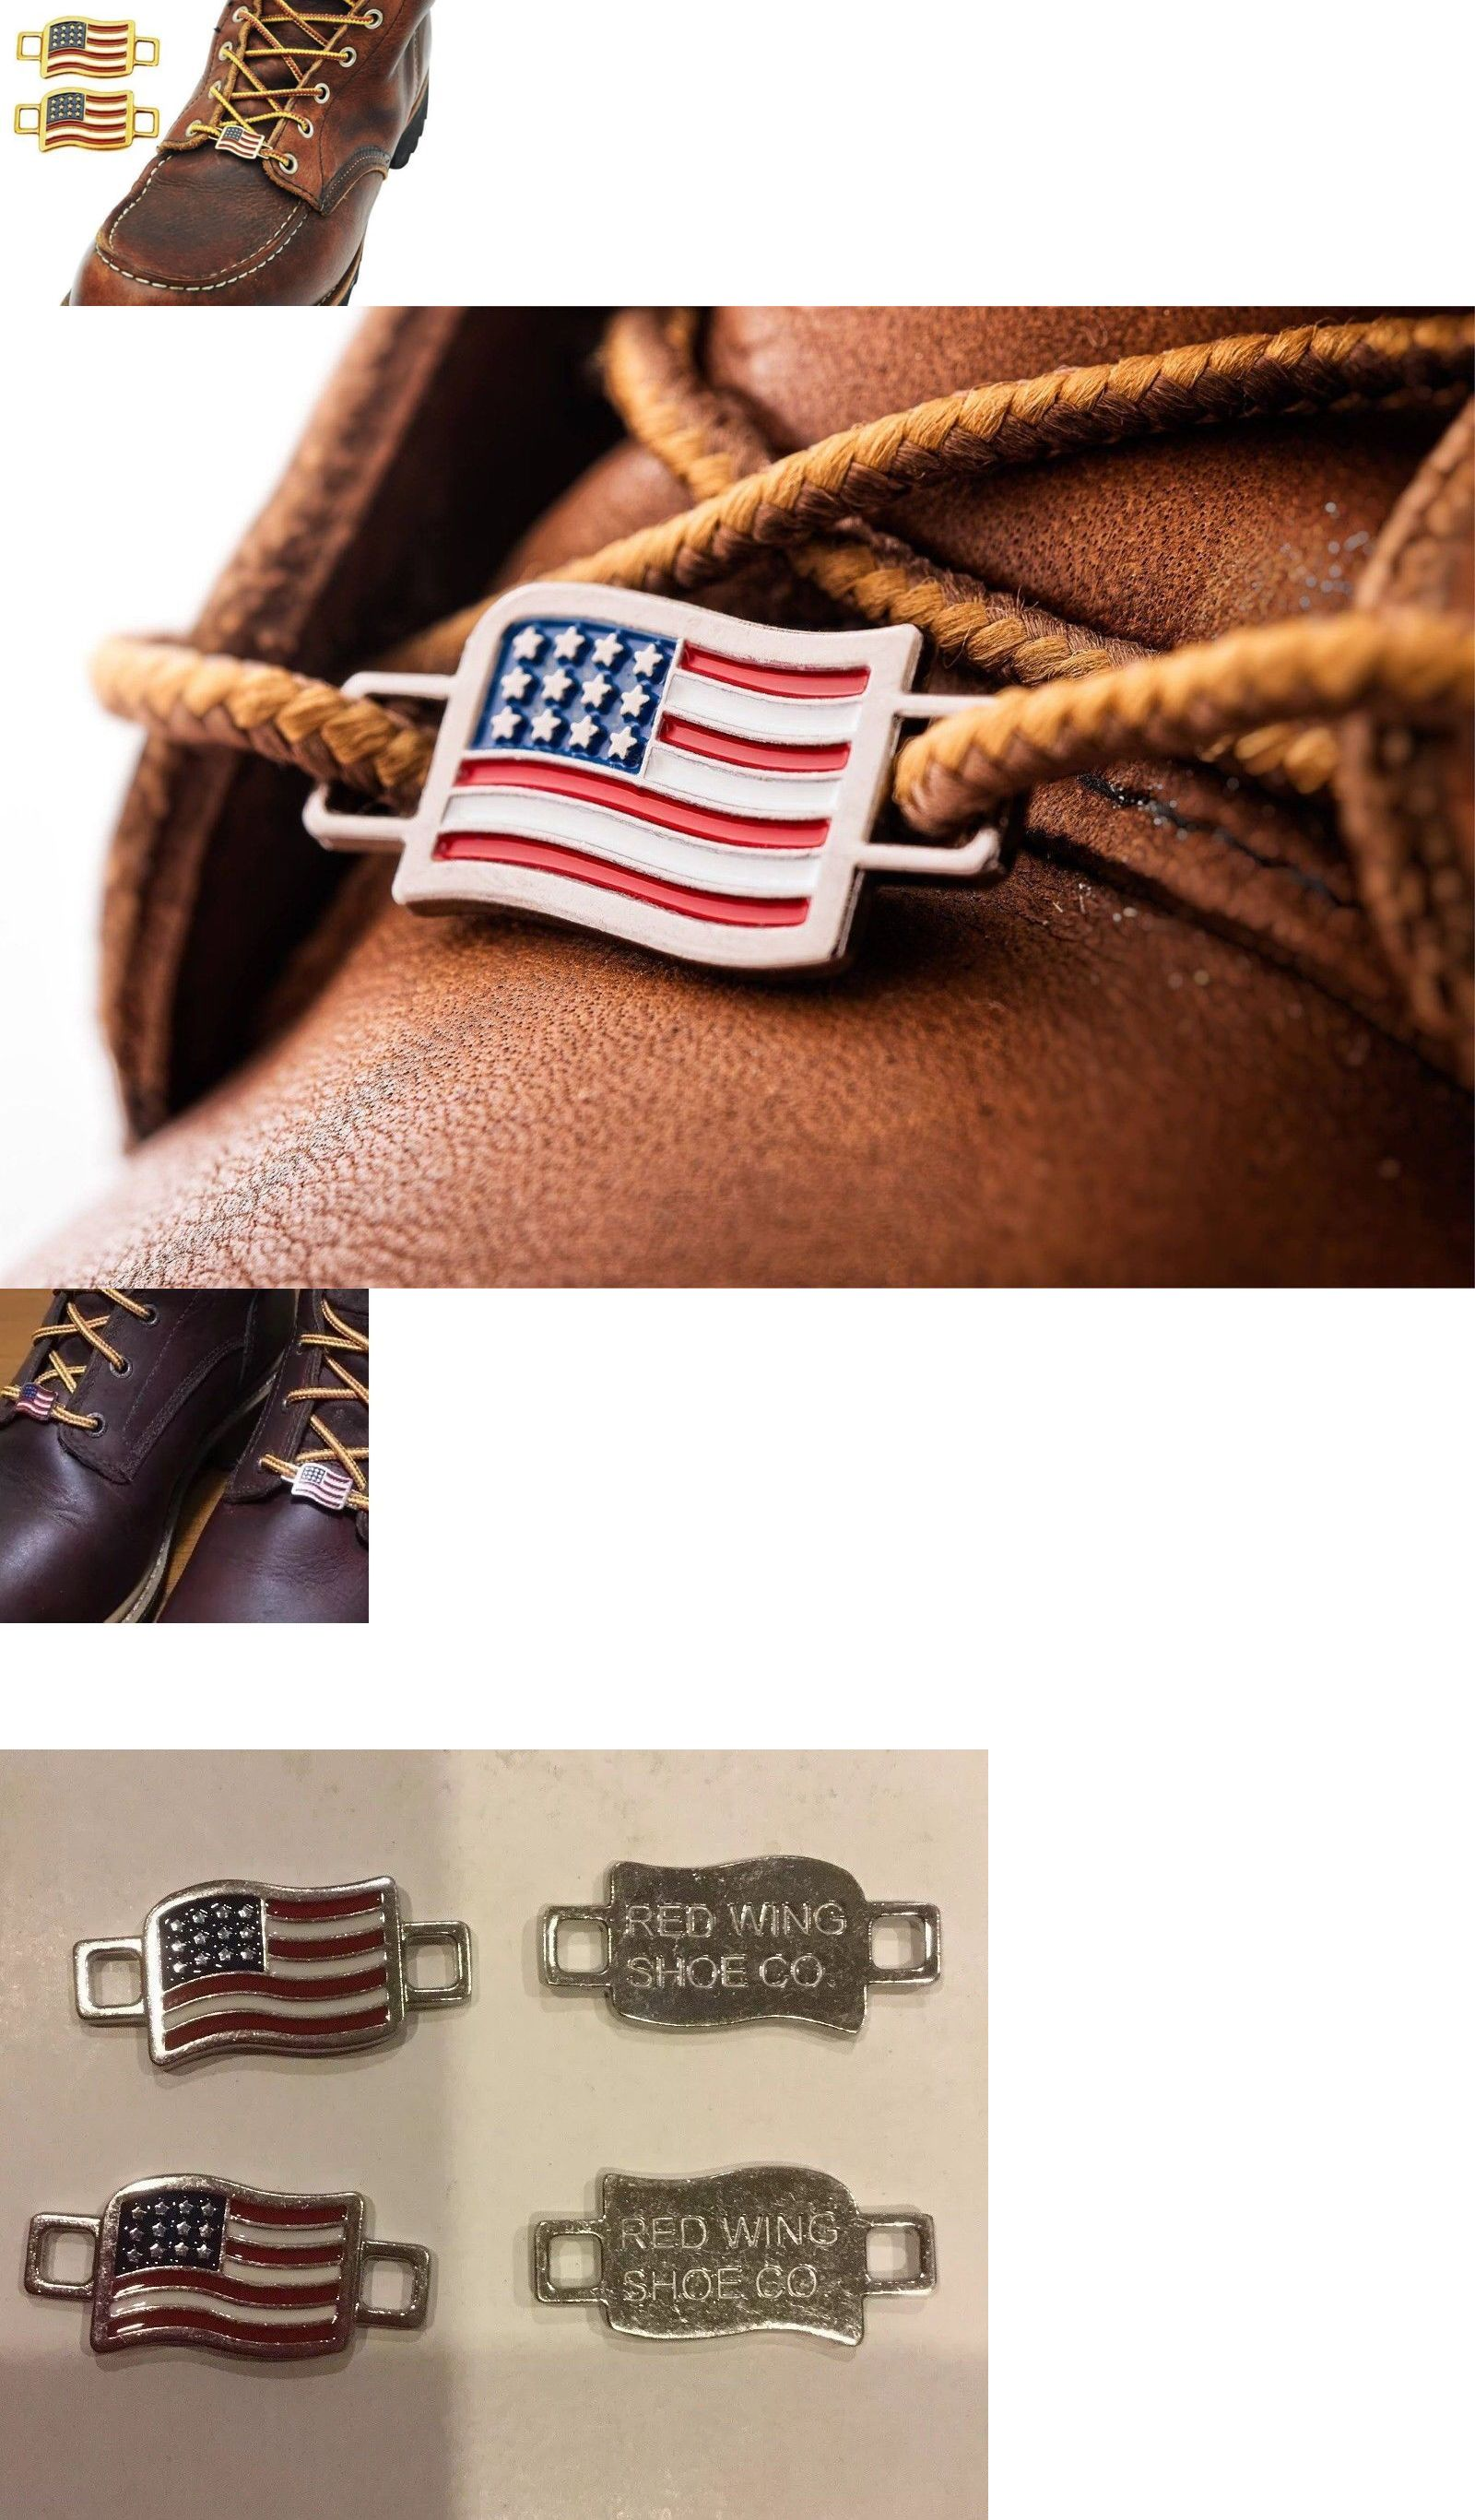 Shoe Laces 169282: Red Wing Shoes (2) 1